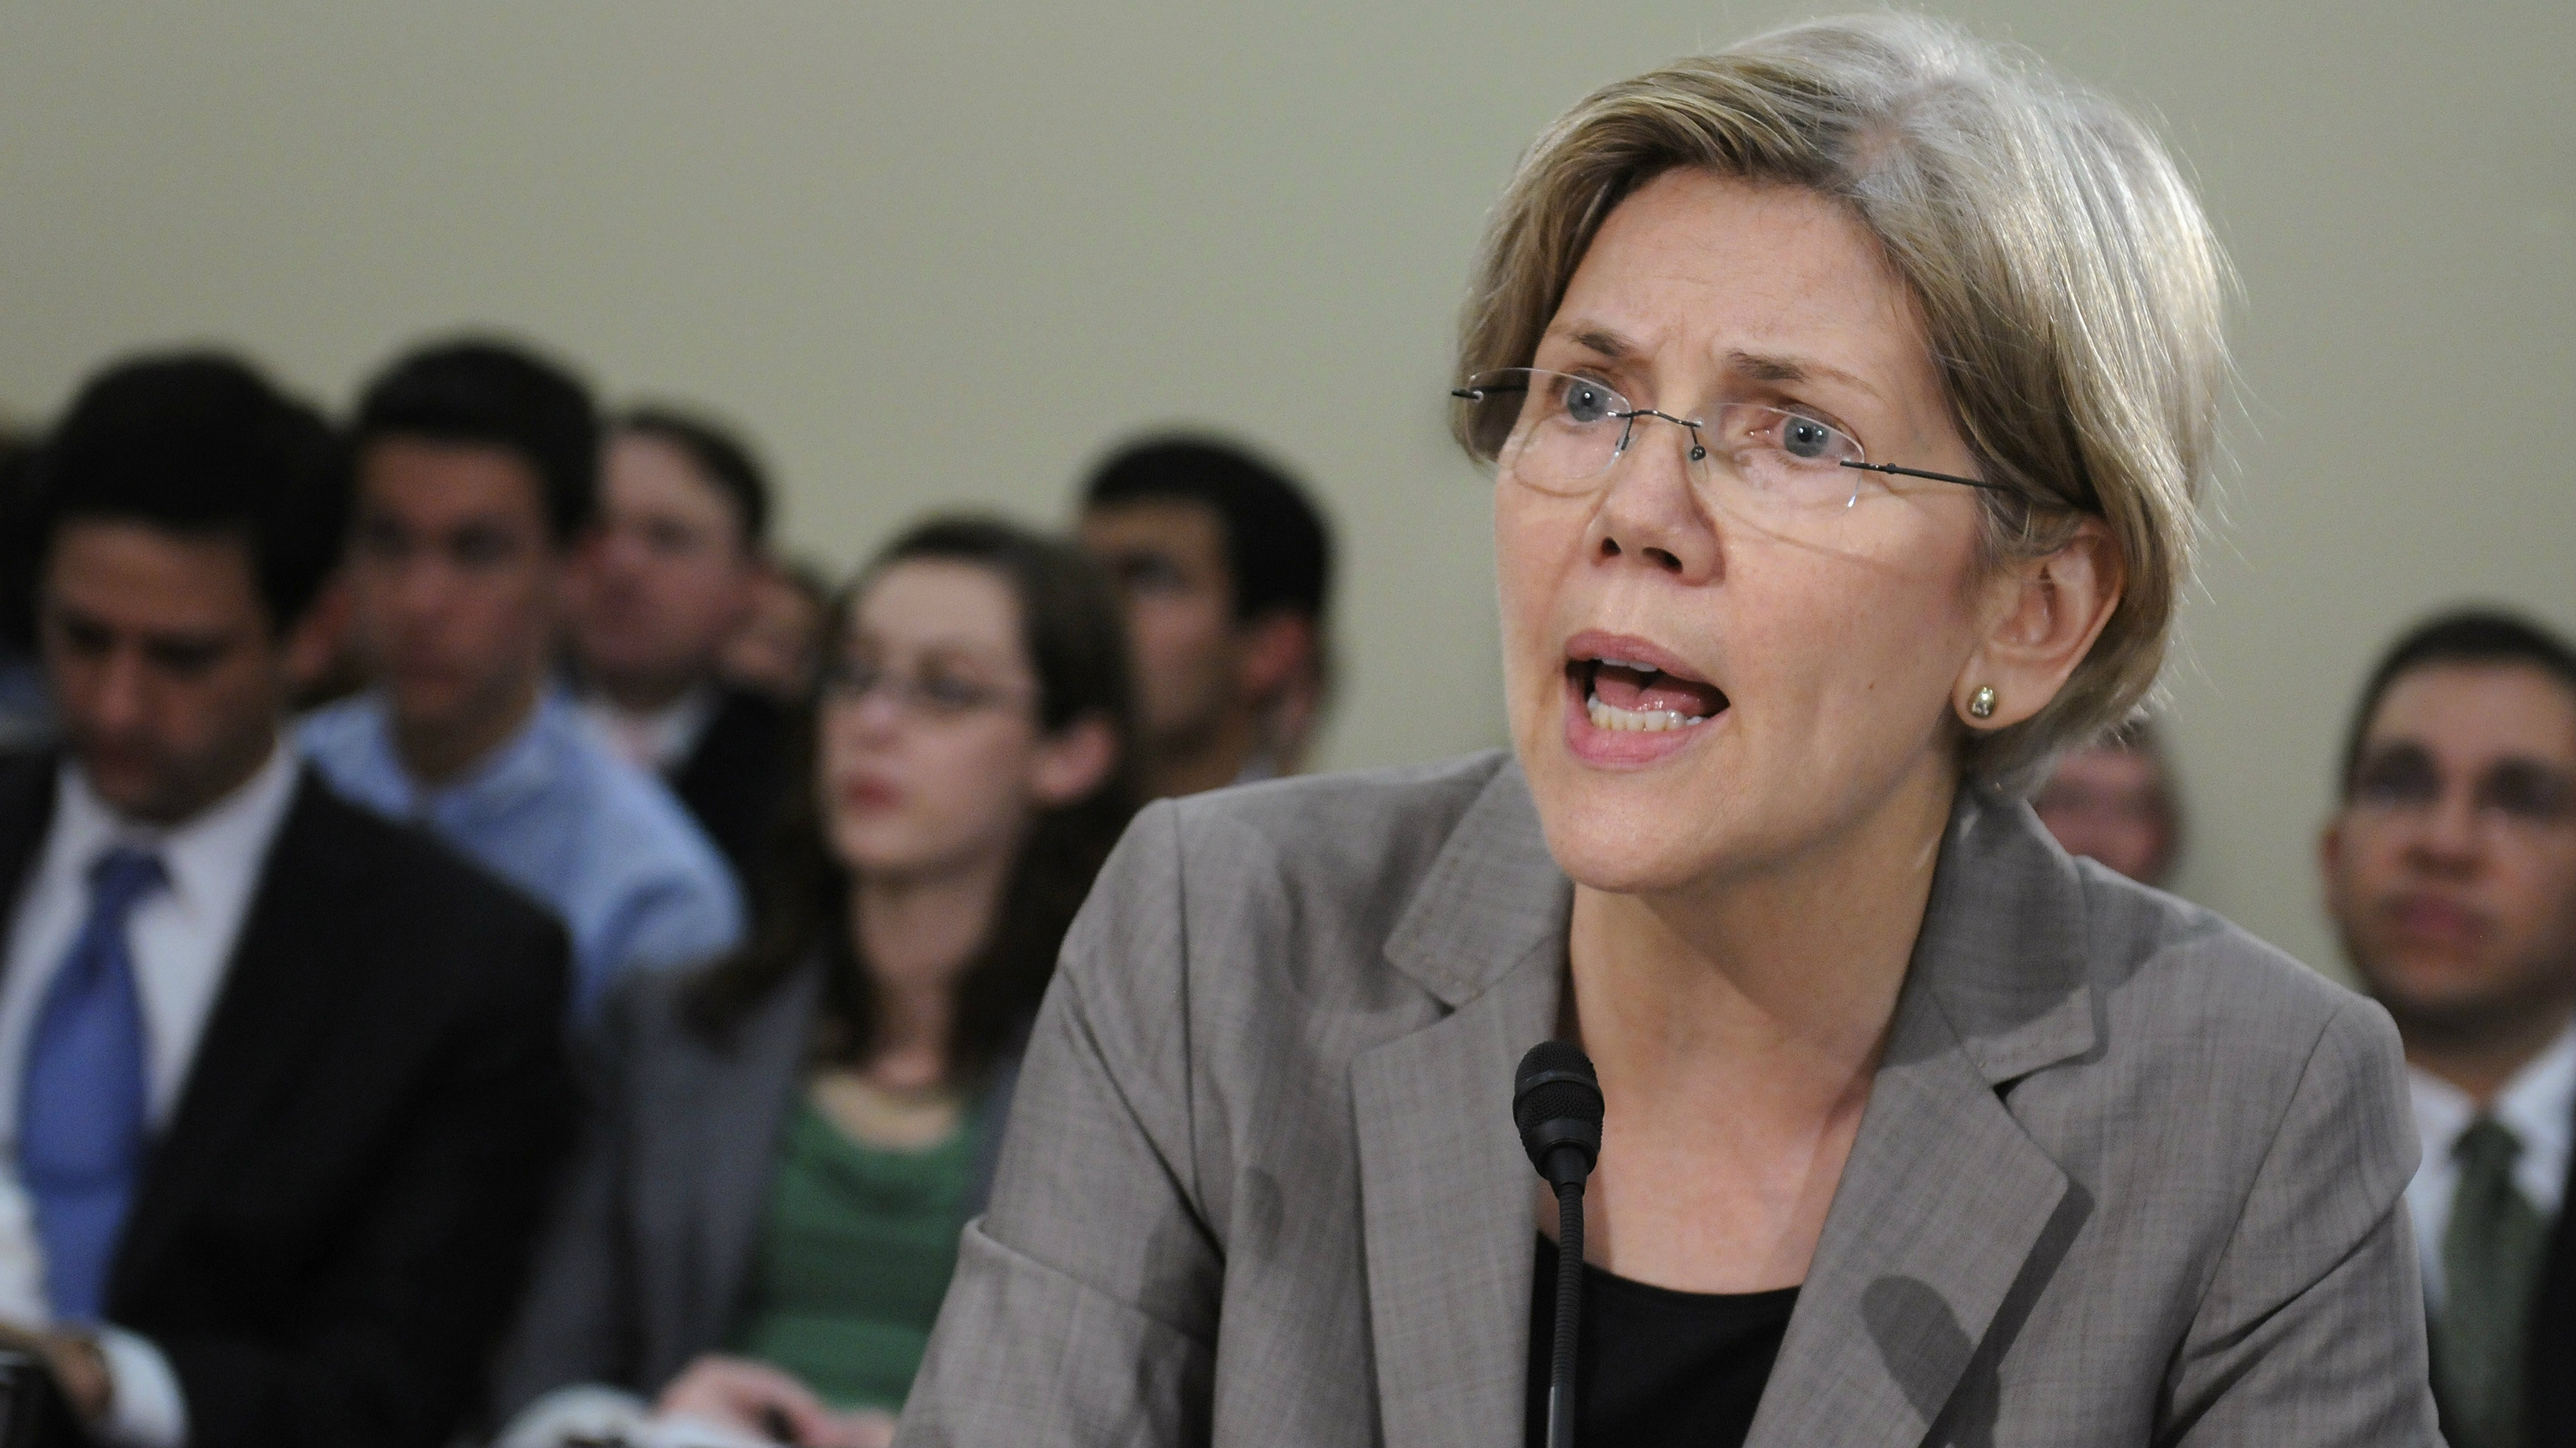 Warren testifies at a hearing about oversight of the Consumer Financial Protection Bureau of the U.S....